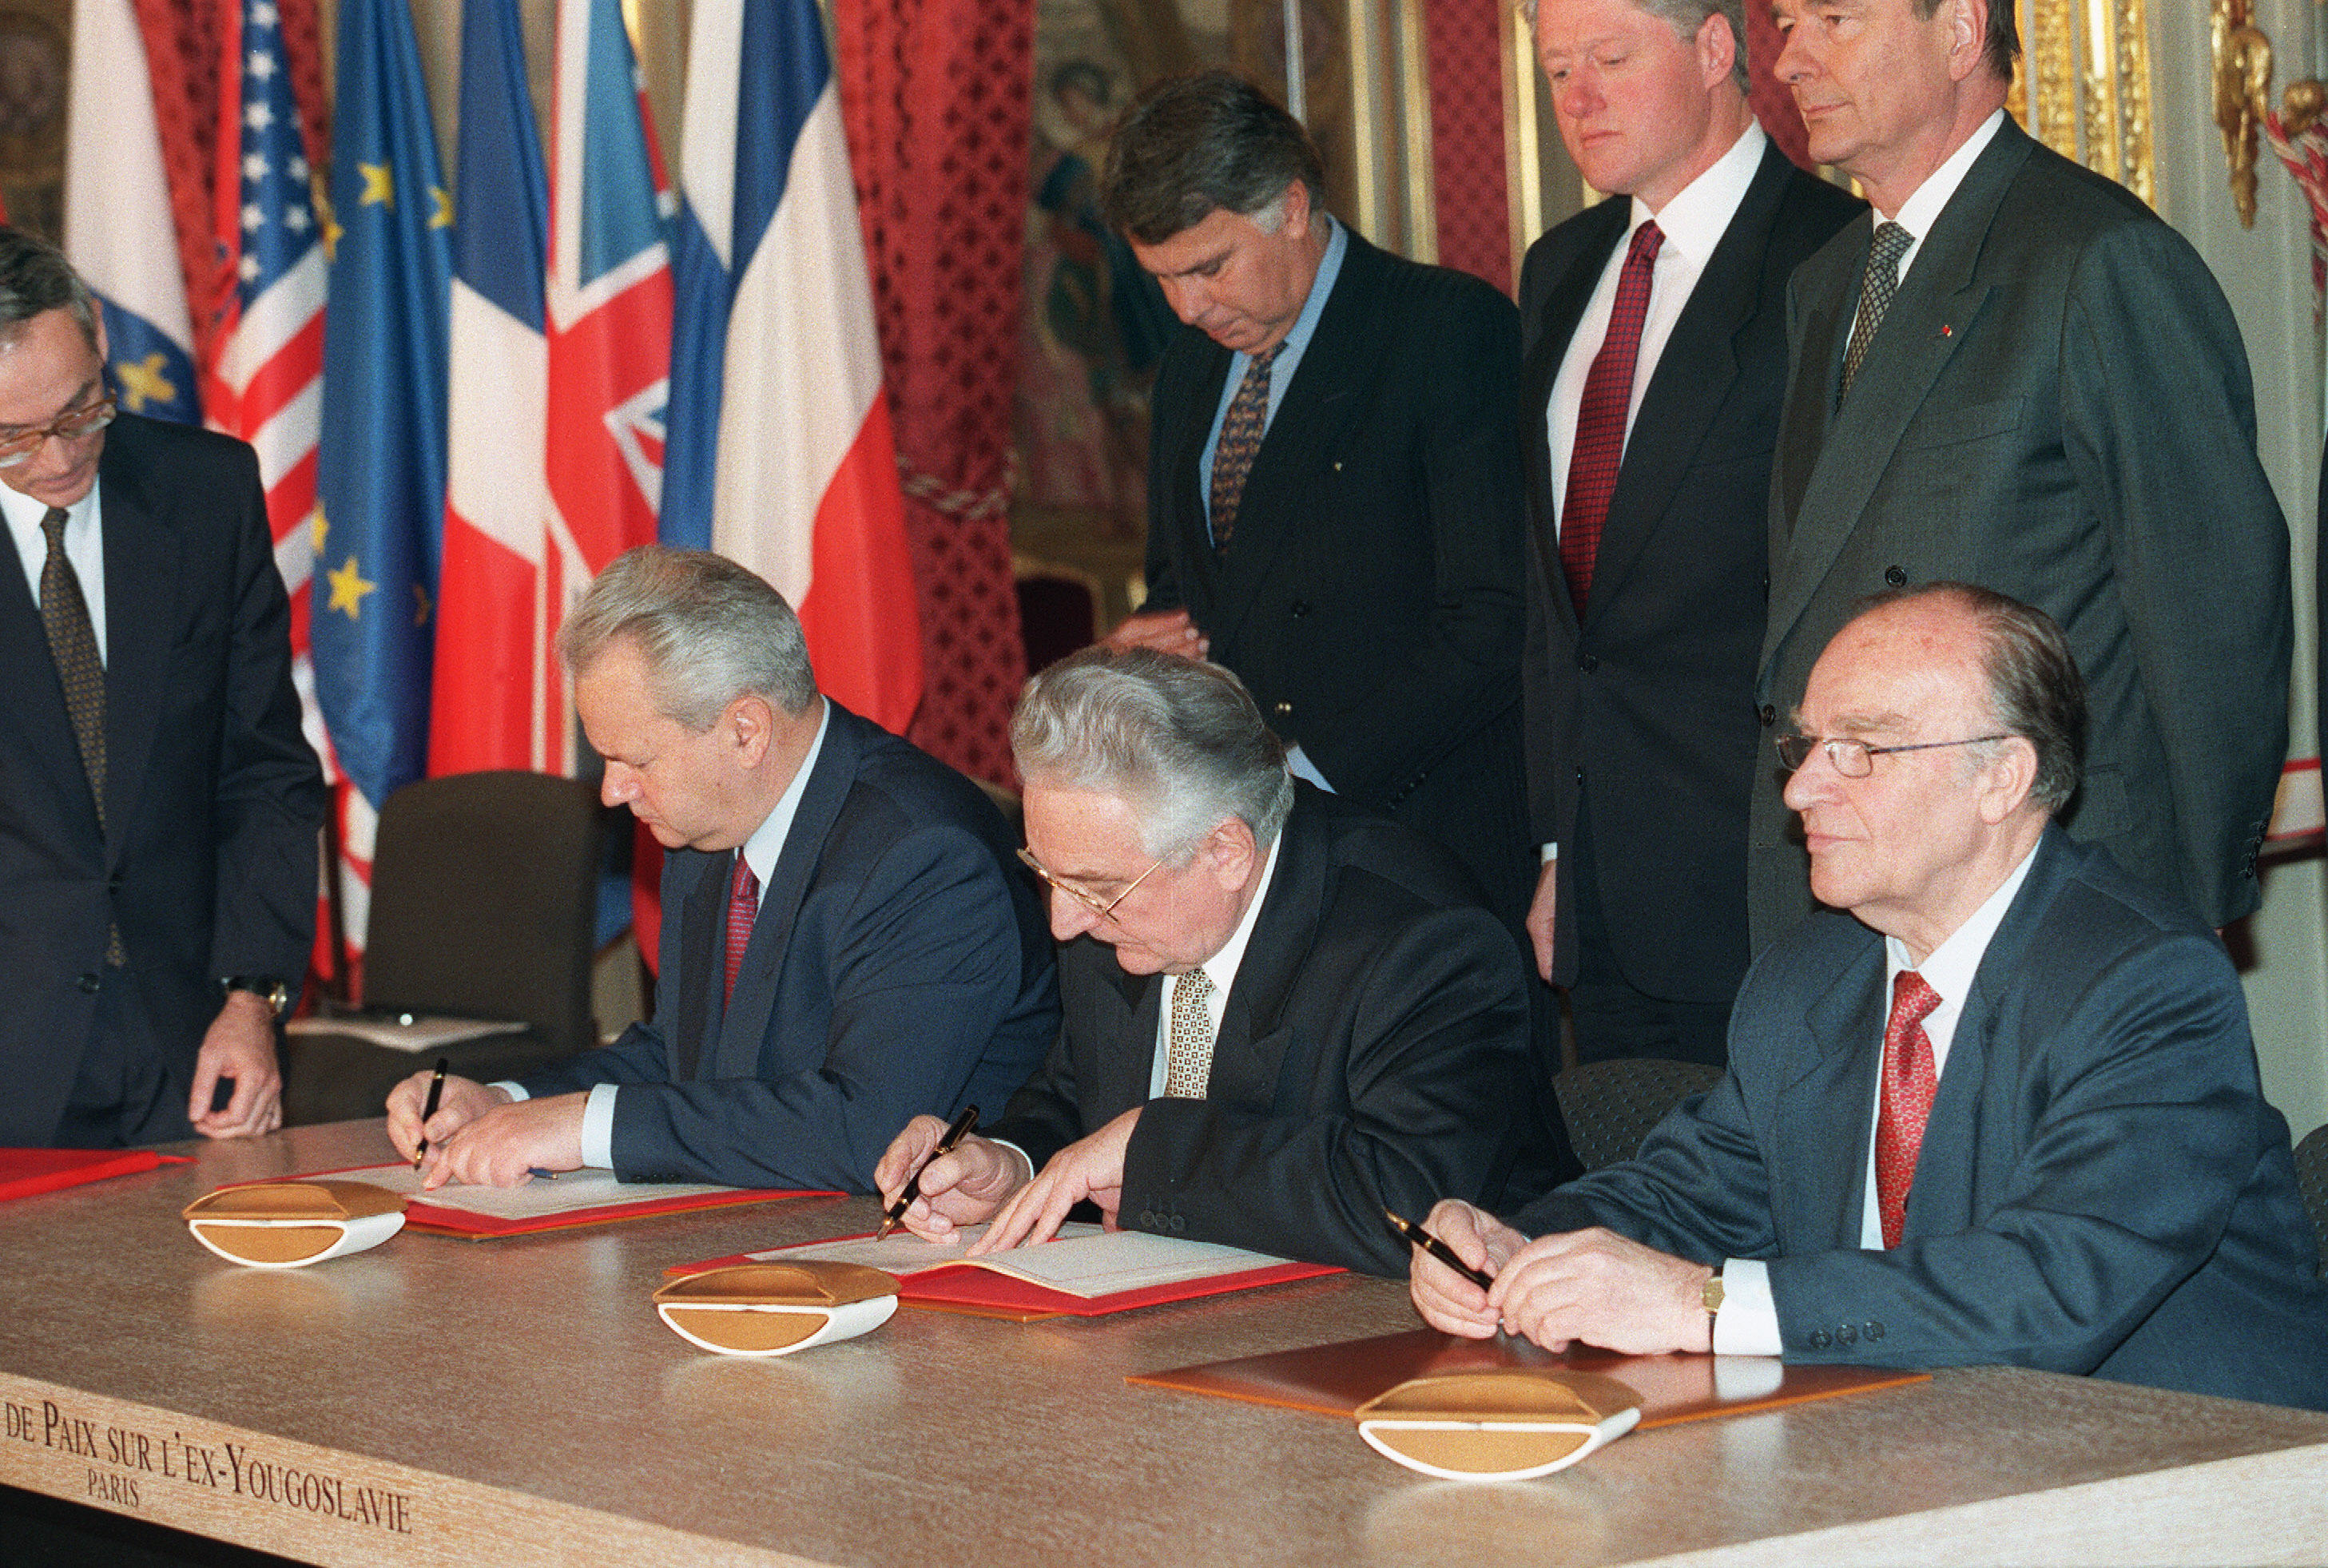 Paris, FRANCE: (FILES) This file picture taken 14 December 2005 at the Elysee Palace in Paris shows (1st Row L to R) Serbian president Slobodan Milosevic, Bosnian President Alija Izetbegovic (C) and Croatian President Franjo Tudjman signing the Dayton peace accord on Bosnia, as (2d row L to R) Spanish Prime Minister Felipe Gonzalez, US President Bill Clinton and French President Jacques Chirac look on. 14 December 2005 will mark the 10th anniversary of the signing of the Dayton peace agreement which ended more than three years of bloody inter-ethnic war and divided the country into a shaky system of separate but equal entities. AFP PHOTO/FILES/MICHEL GAGNE (Photo credit should read MICHEL GANGNE/AFP/Getty Images)